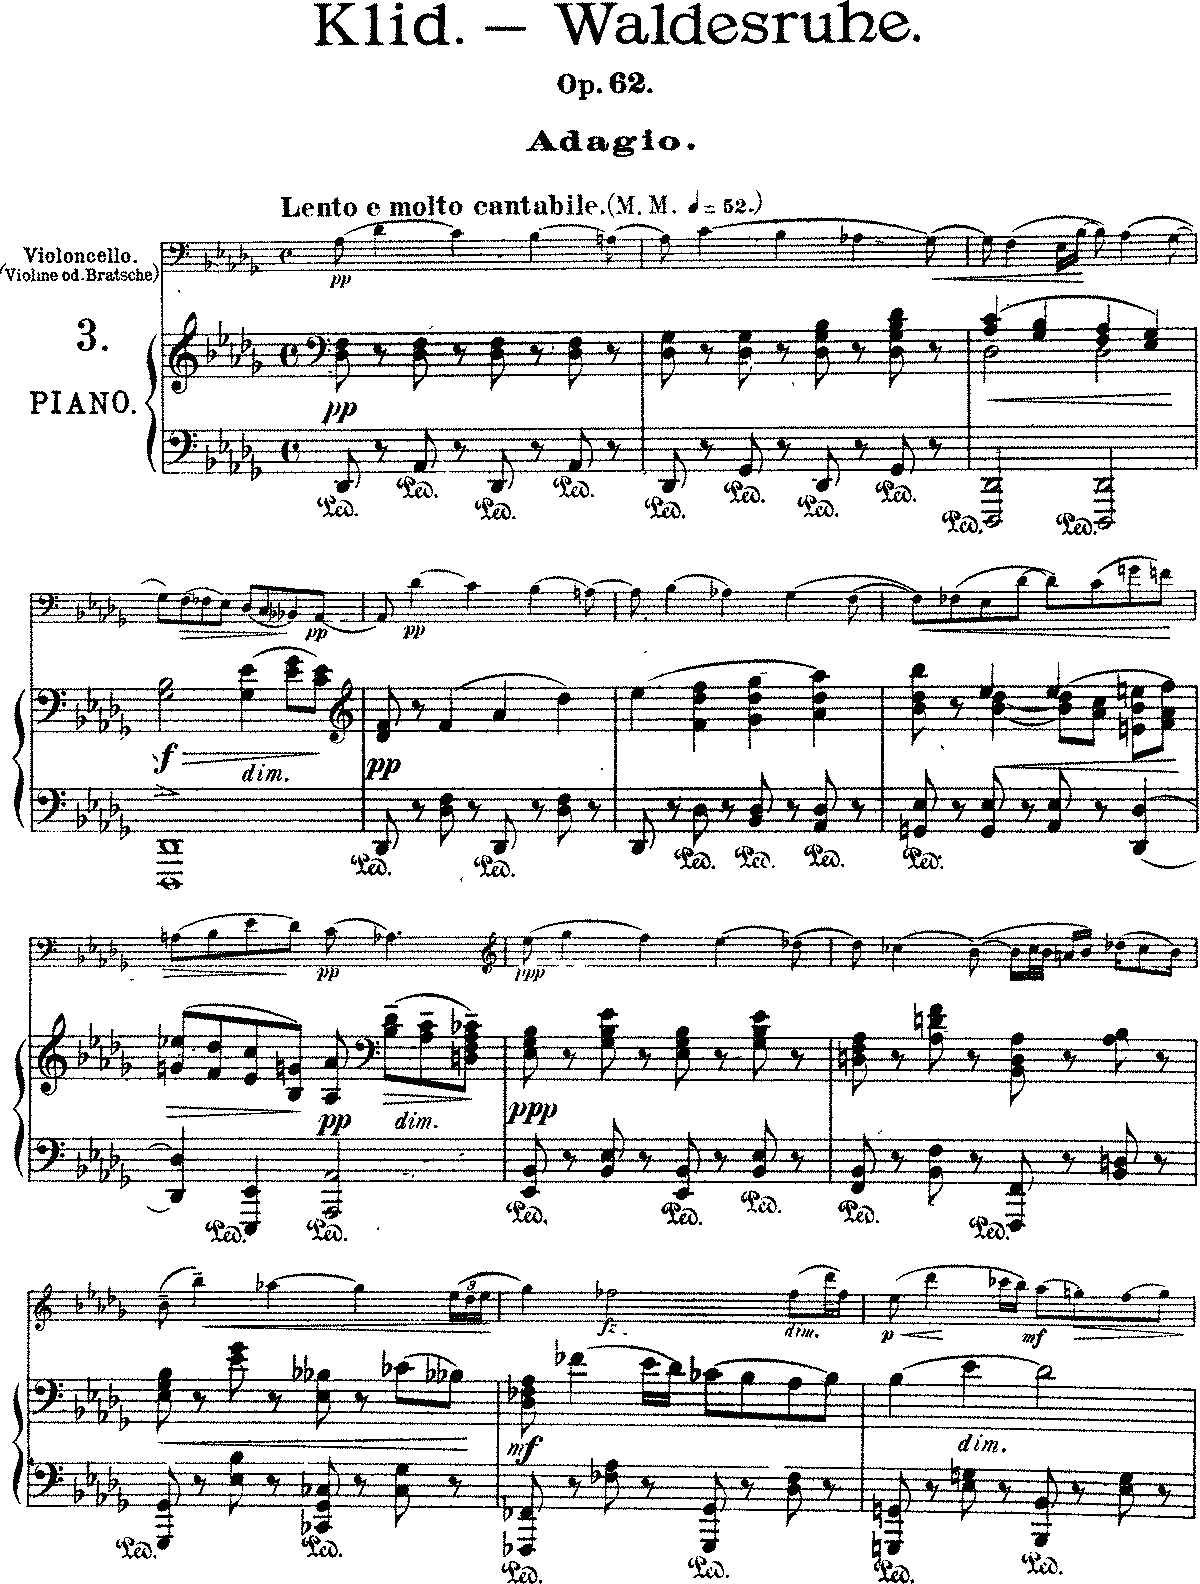 Dvorak - Waldesruhe Op.62 (Cello & Piano).pdf